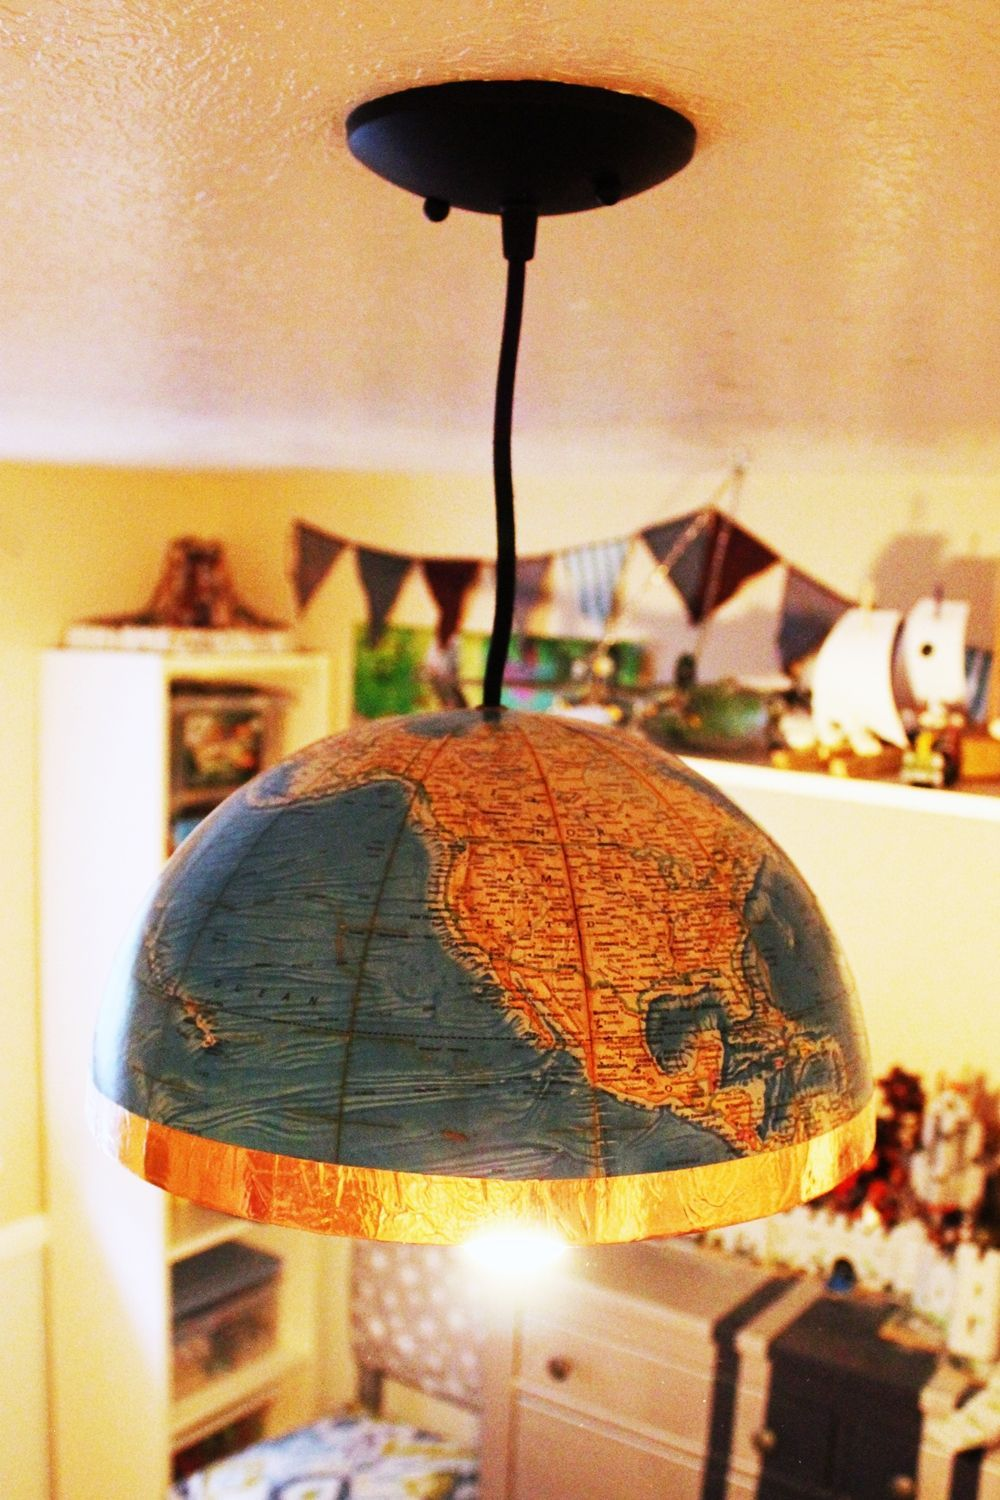 Turn-the-light-on-in-your-new-globe